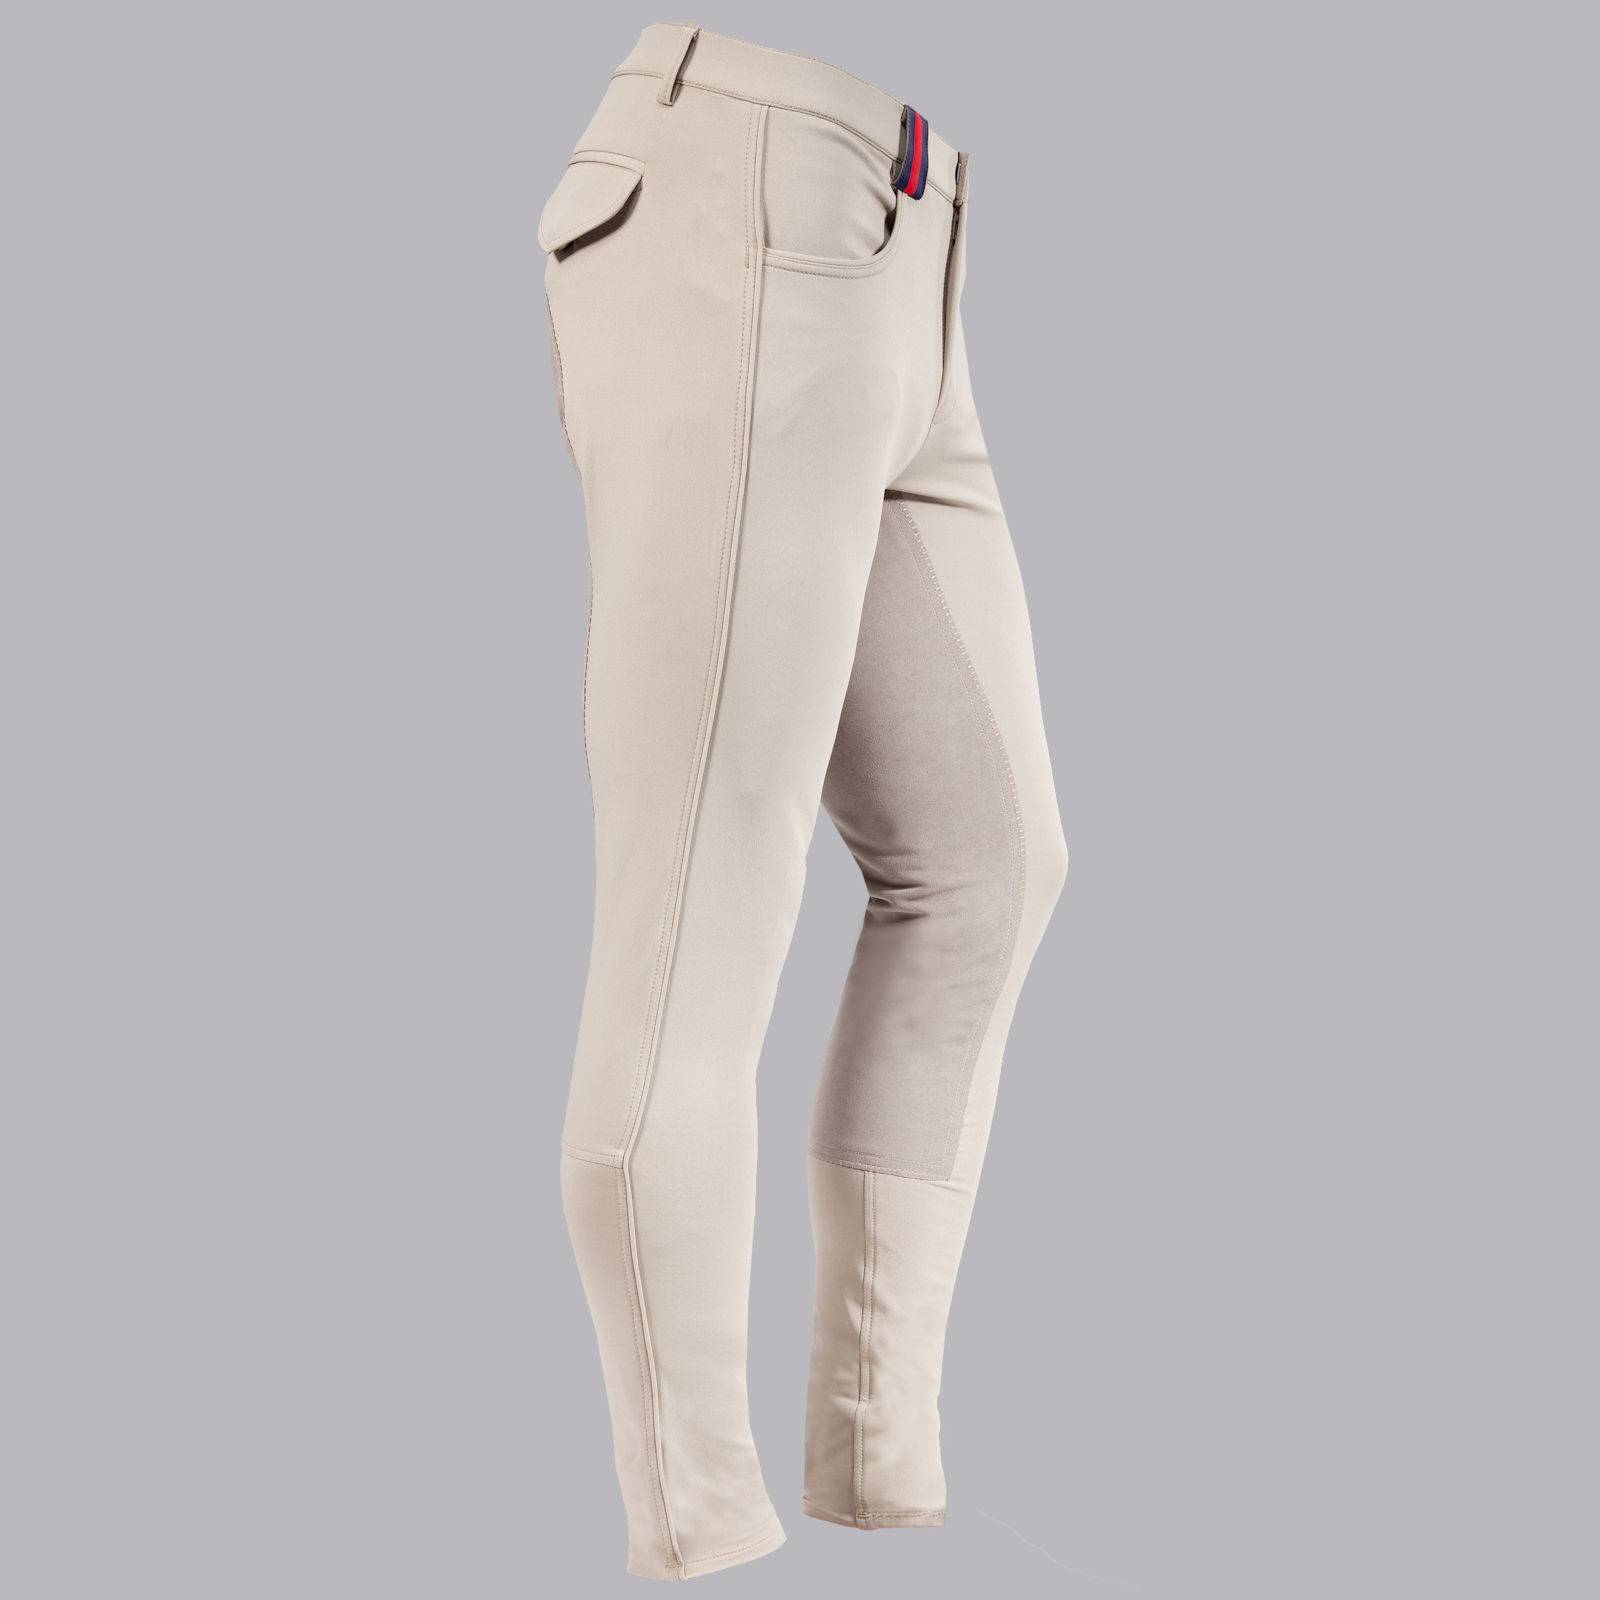 B Vertigo Henderson Men's Full Seat Breeches